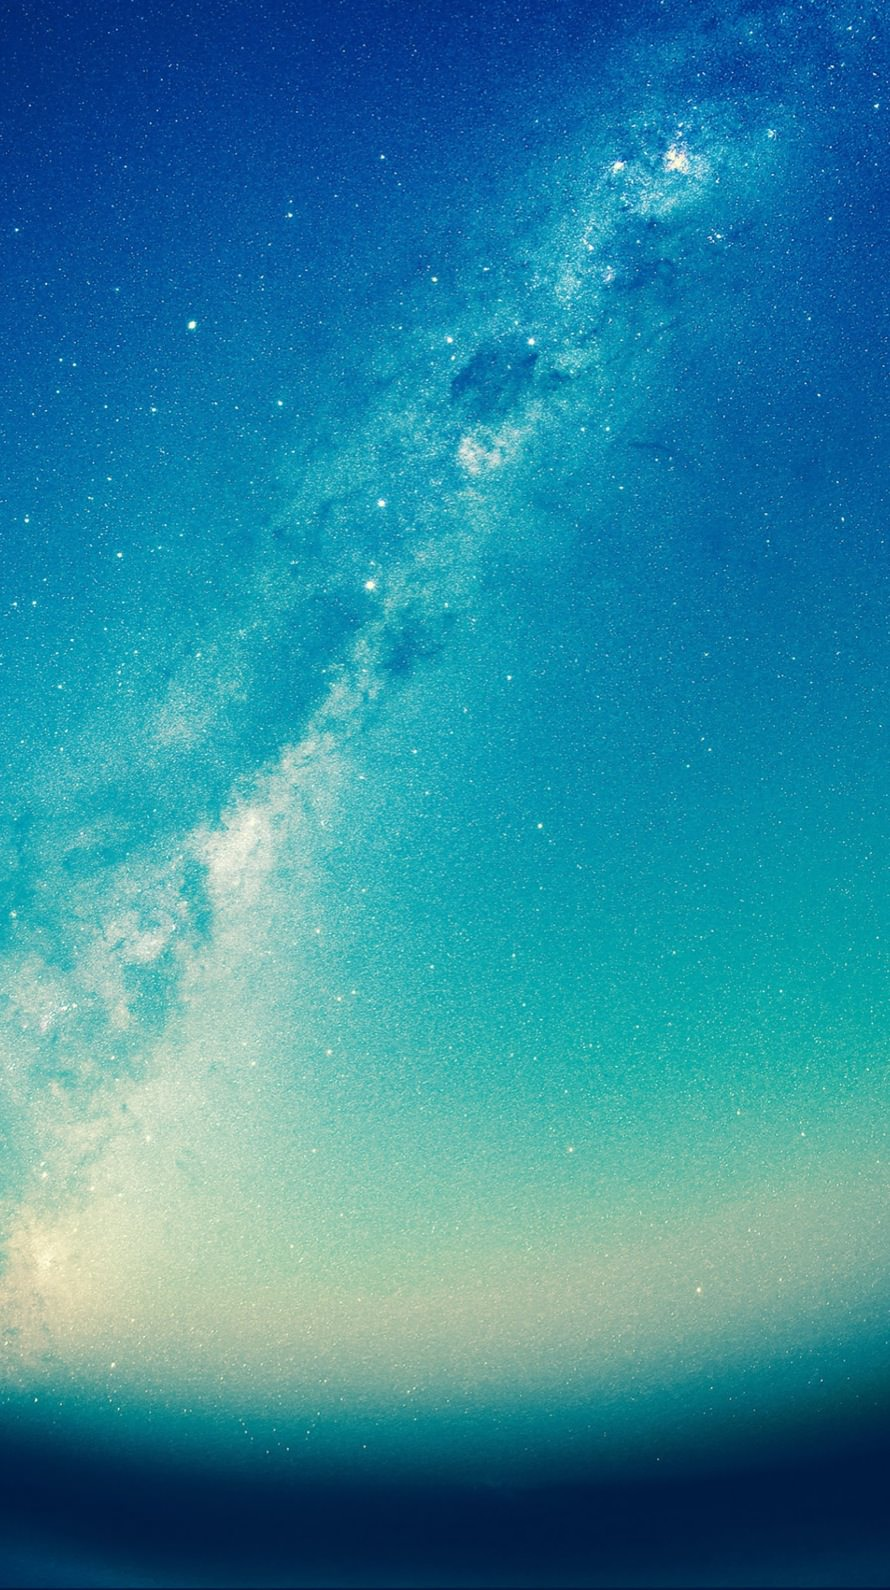 宇宙空 Wallpaper Sc Iphone6s壁紙